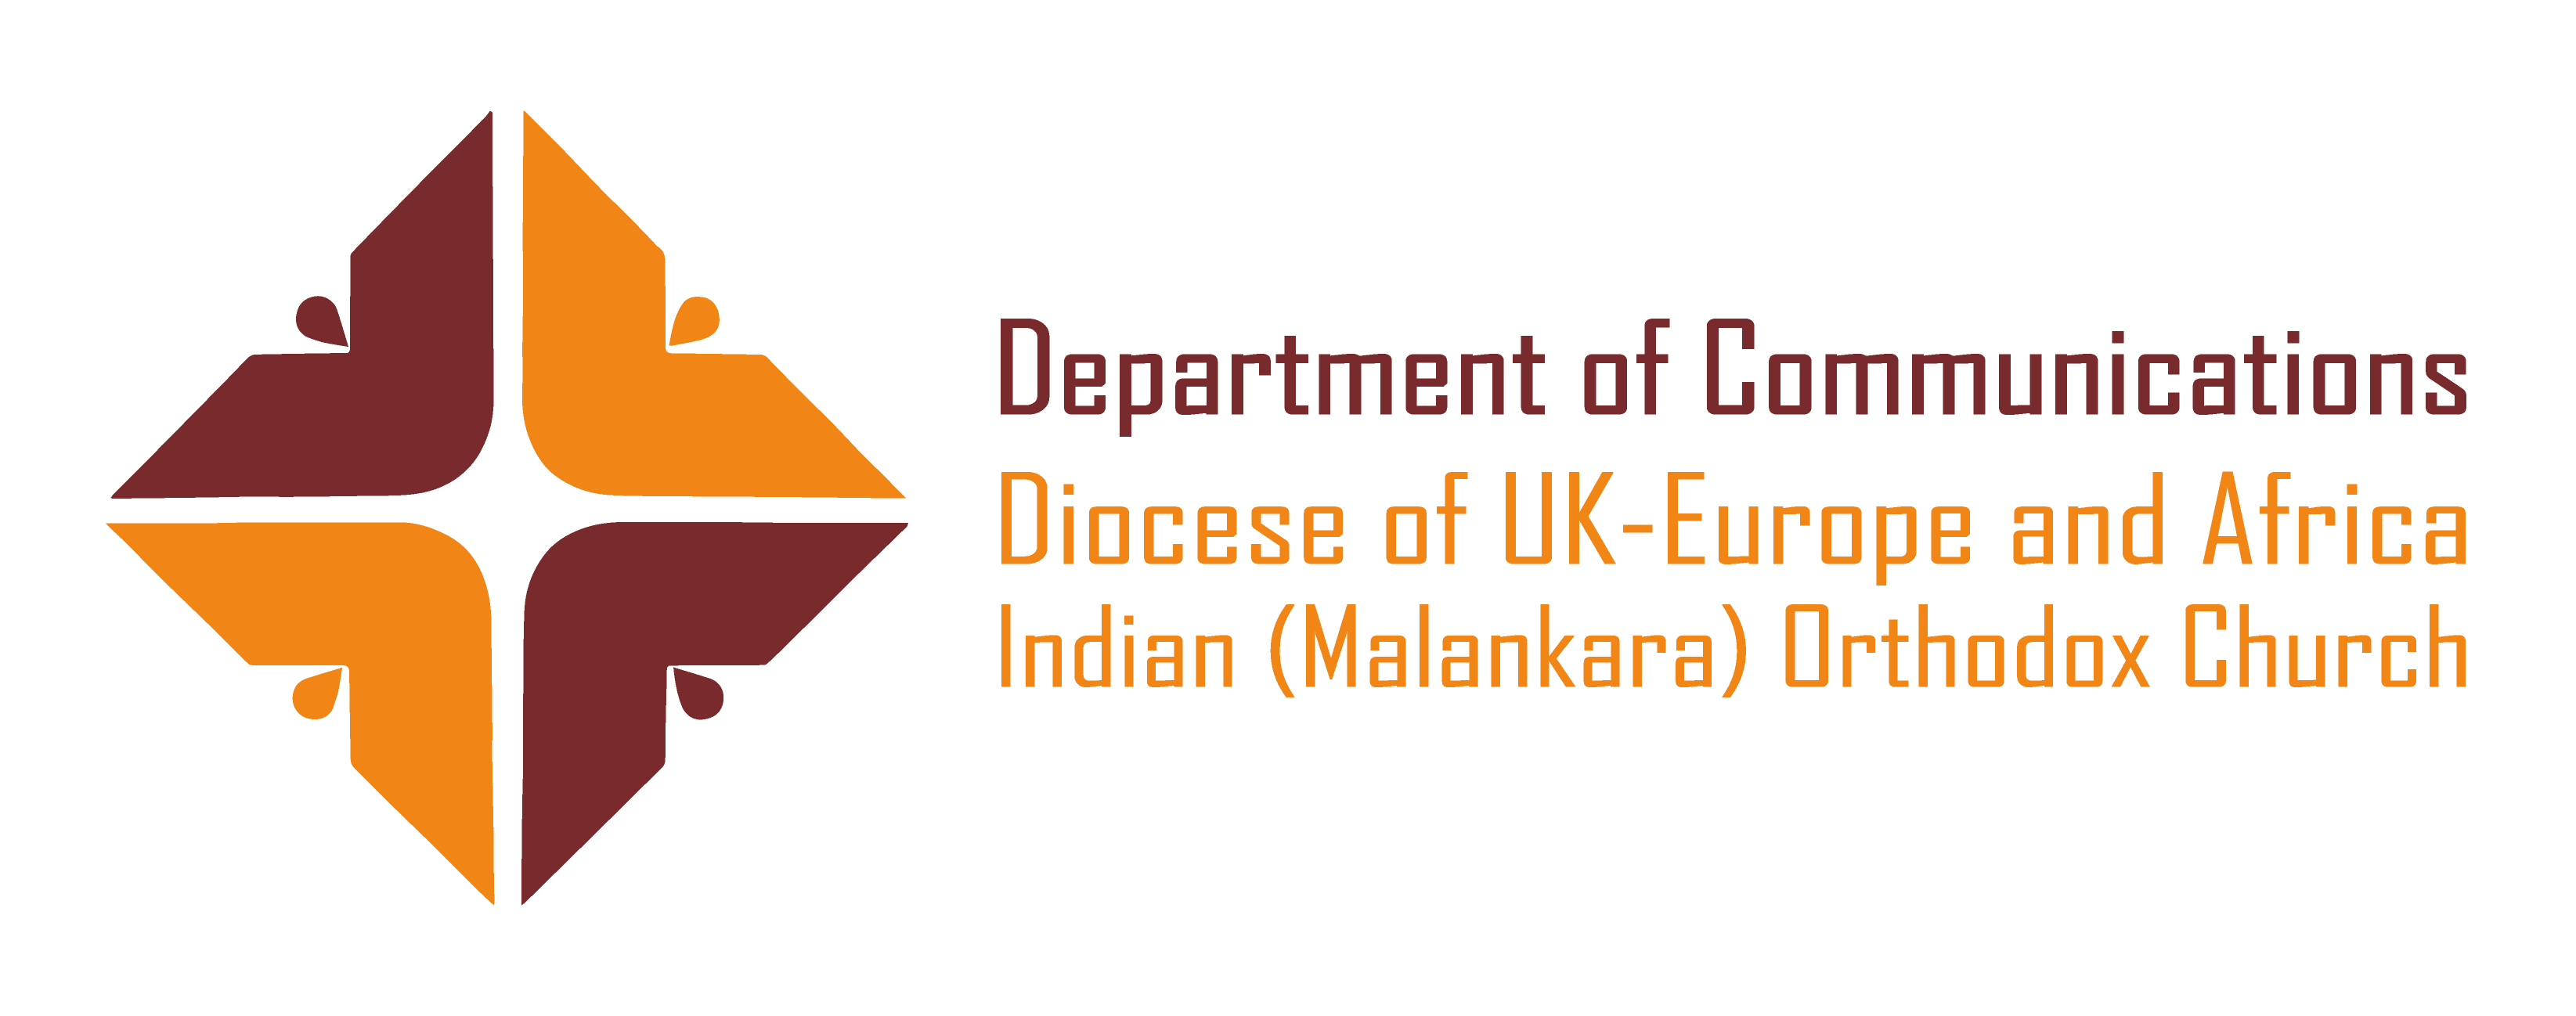 Department of Communications, Diocese of UK-Europe and Africa